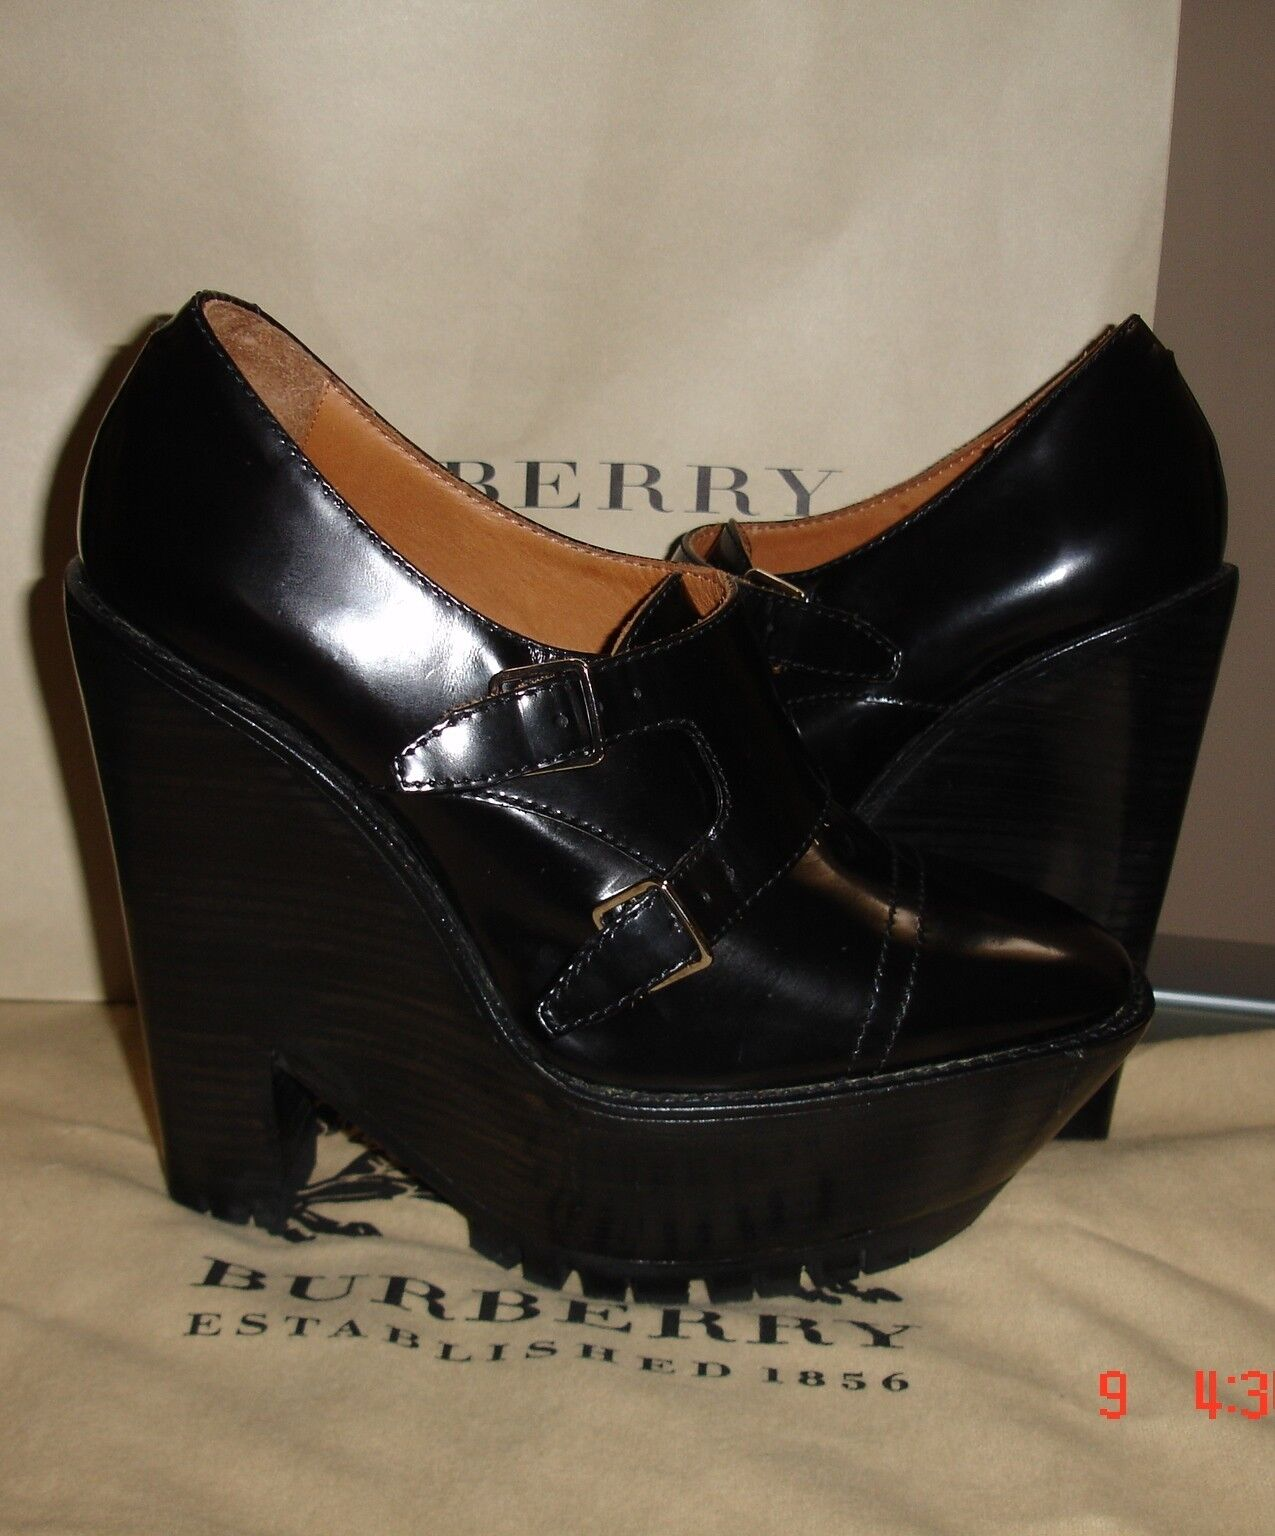 BURBERRY PRORSUM  LEATHER RACING WEDGE BLACK PLATFORM PUMP SHOES 40.5  895